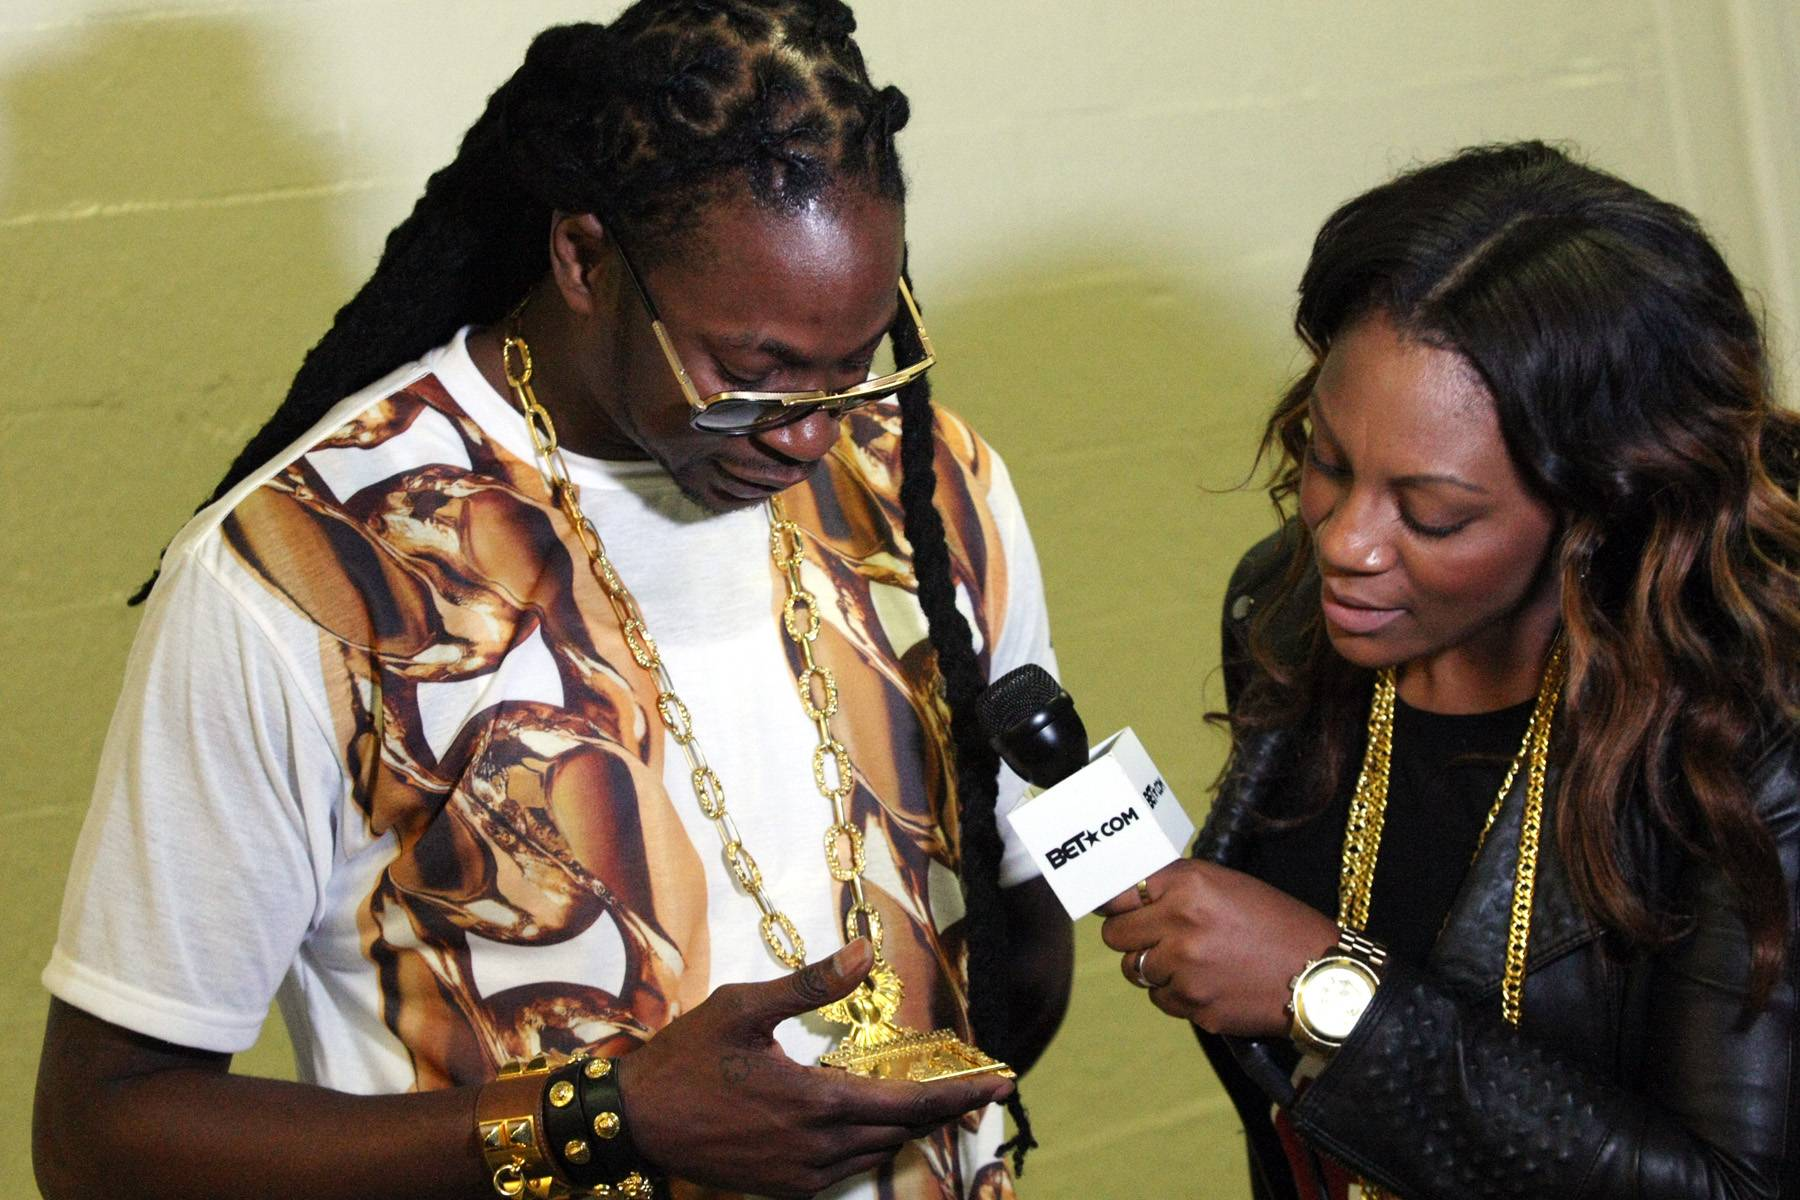 Chainz Keep Coming - 2 Chainz visits 106 and does a quick interview backstage.(Photo: Bennett Raglin/BET/Getty Images for BET)